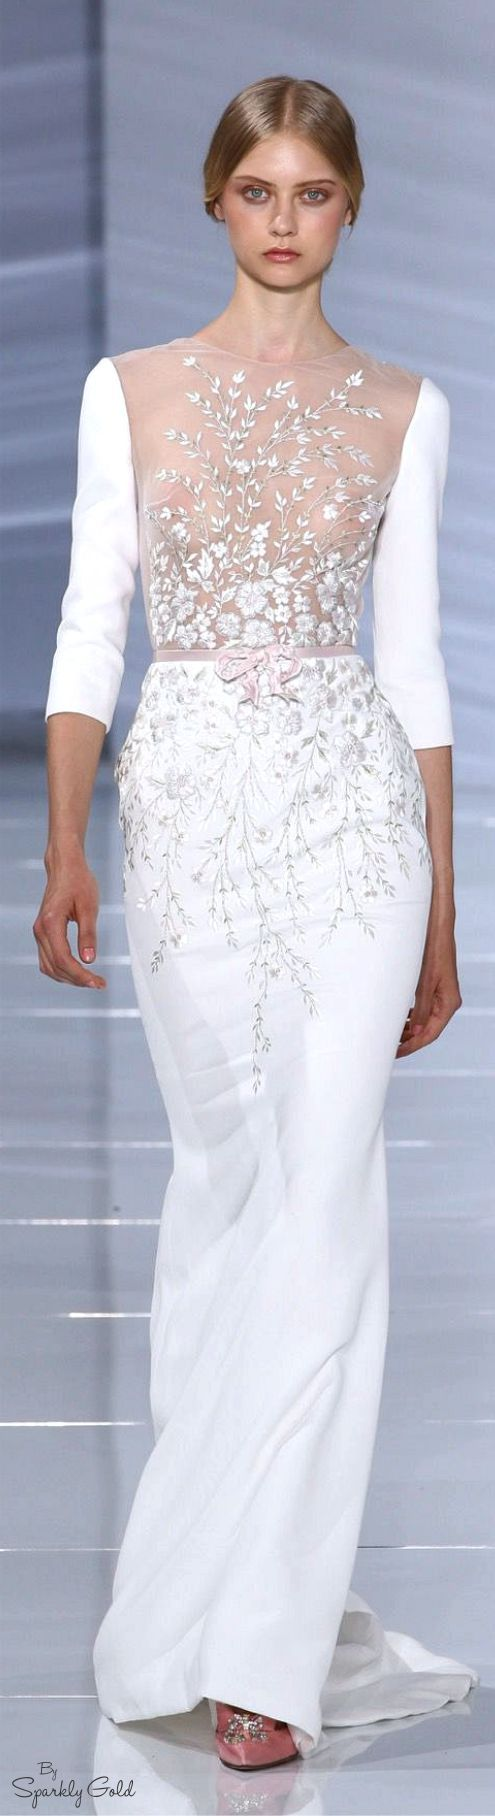 Georges Hobeika. Needs a liner but beautiful. #coupon code nicesup123 gets 25% off at www.Provestra.com www.Skinception.com and www.leadingedgehealth.com